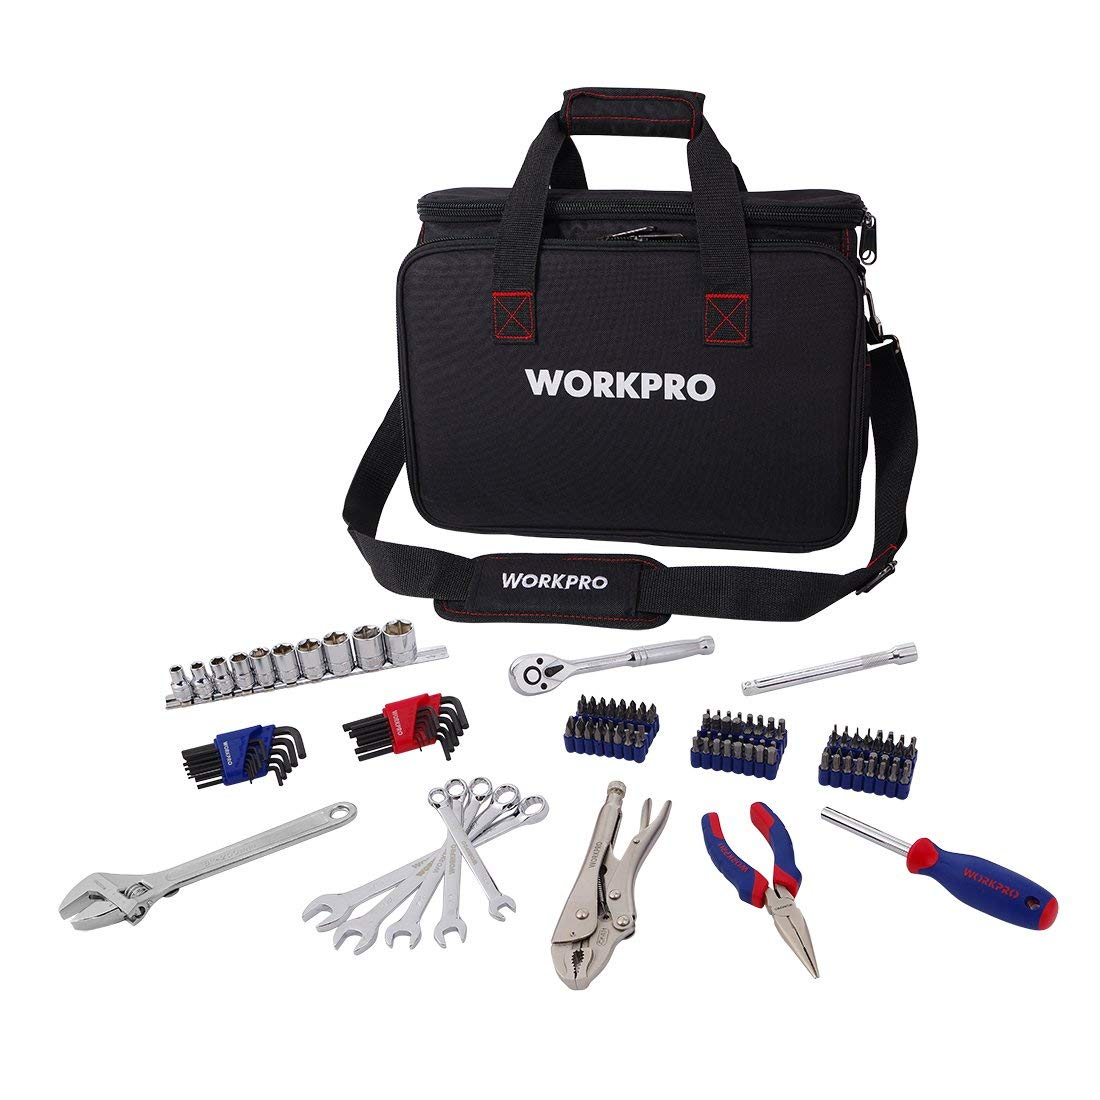 WORKPRO Tool Set, 143-piece Home Repair Tool Kit in Heavy Duty Contractor Tool Bag with Adjustable Shoulder Strap